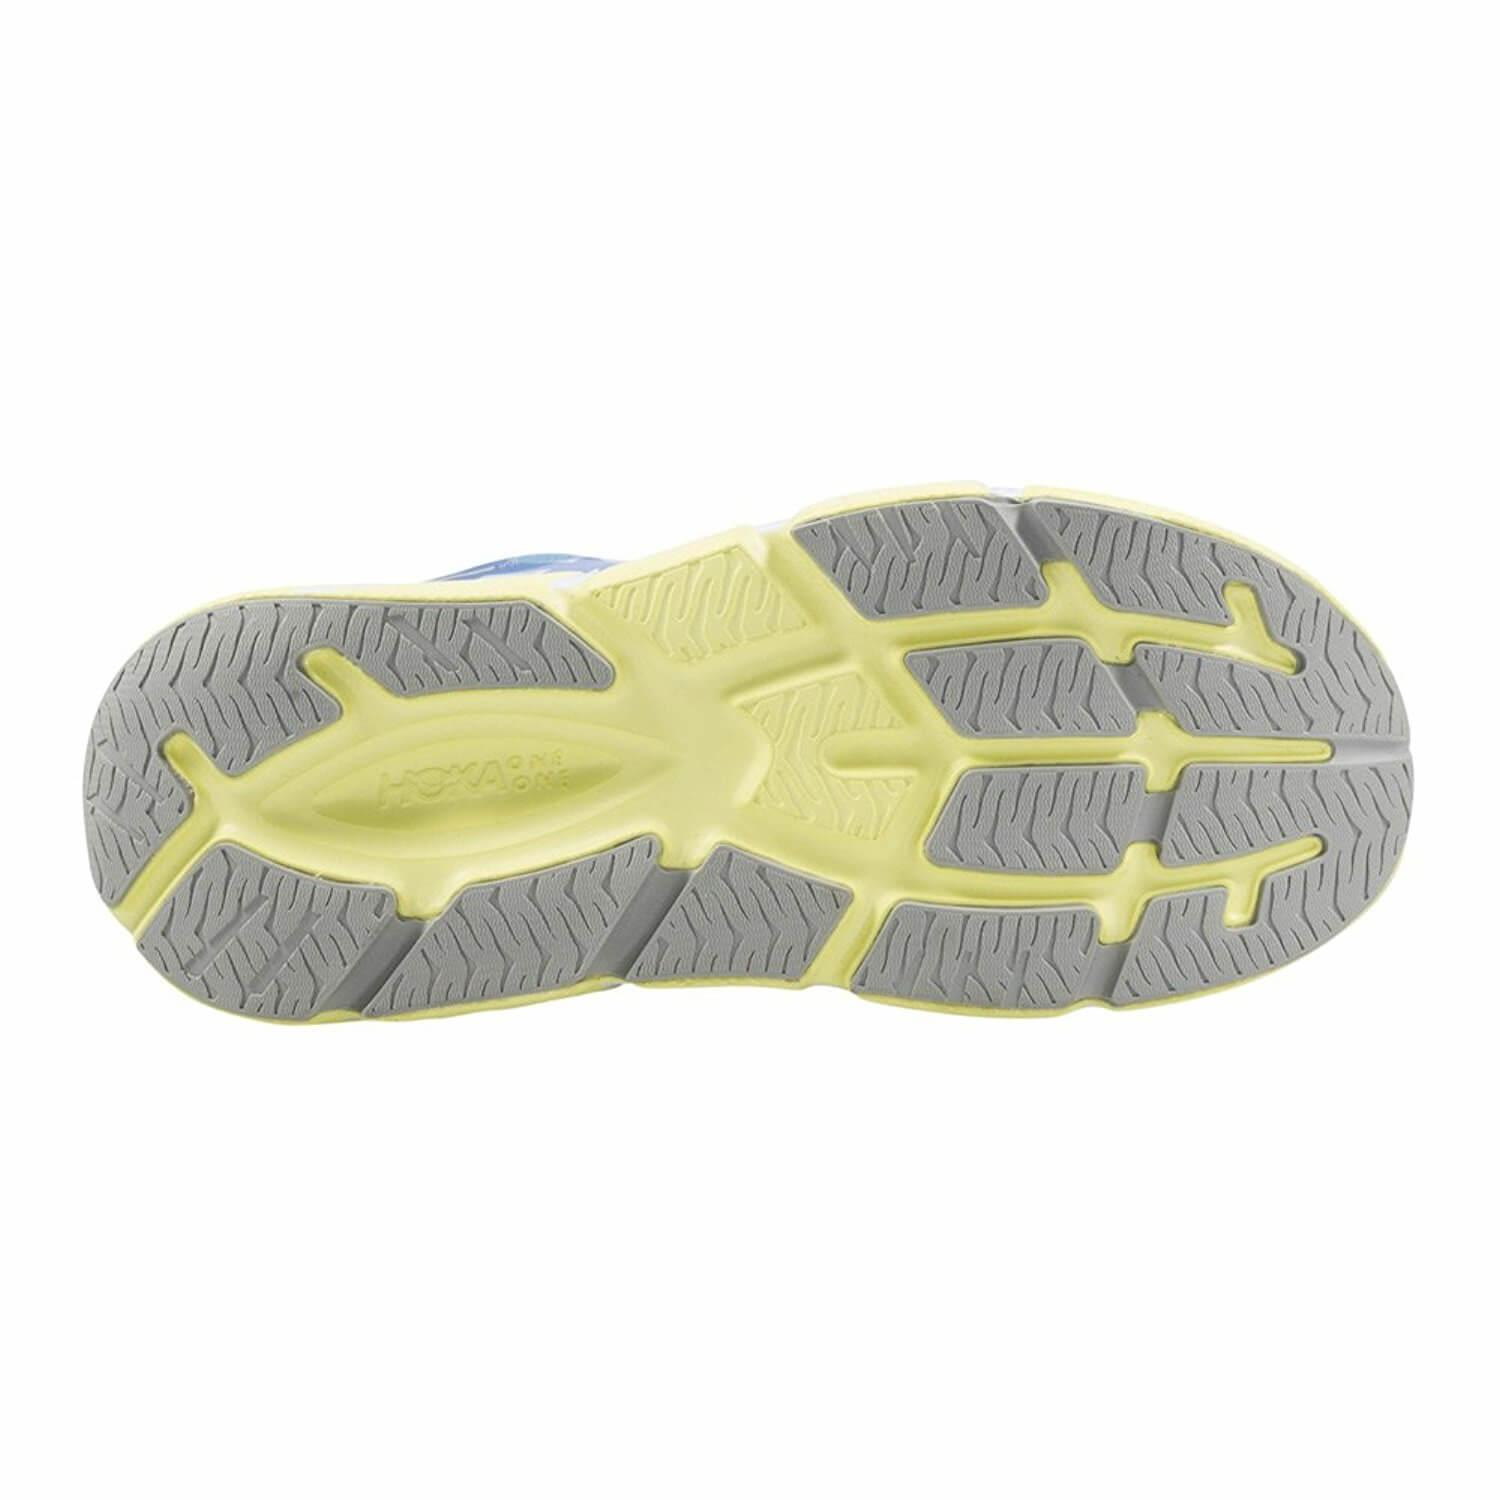 Hoka One One Infinite Bottom